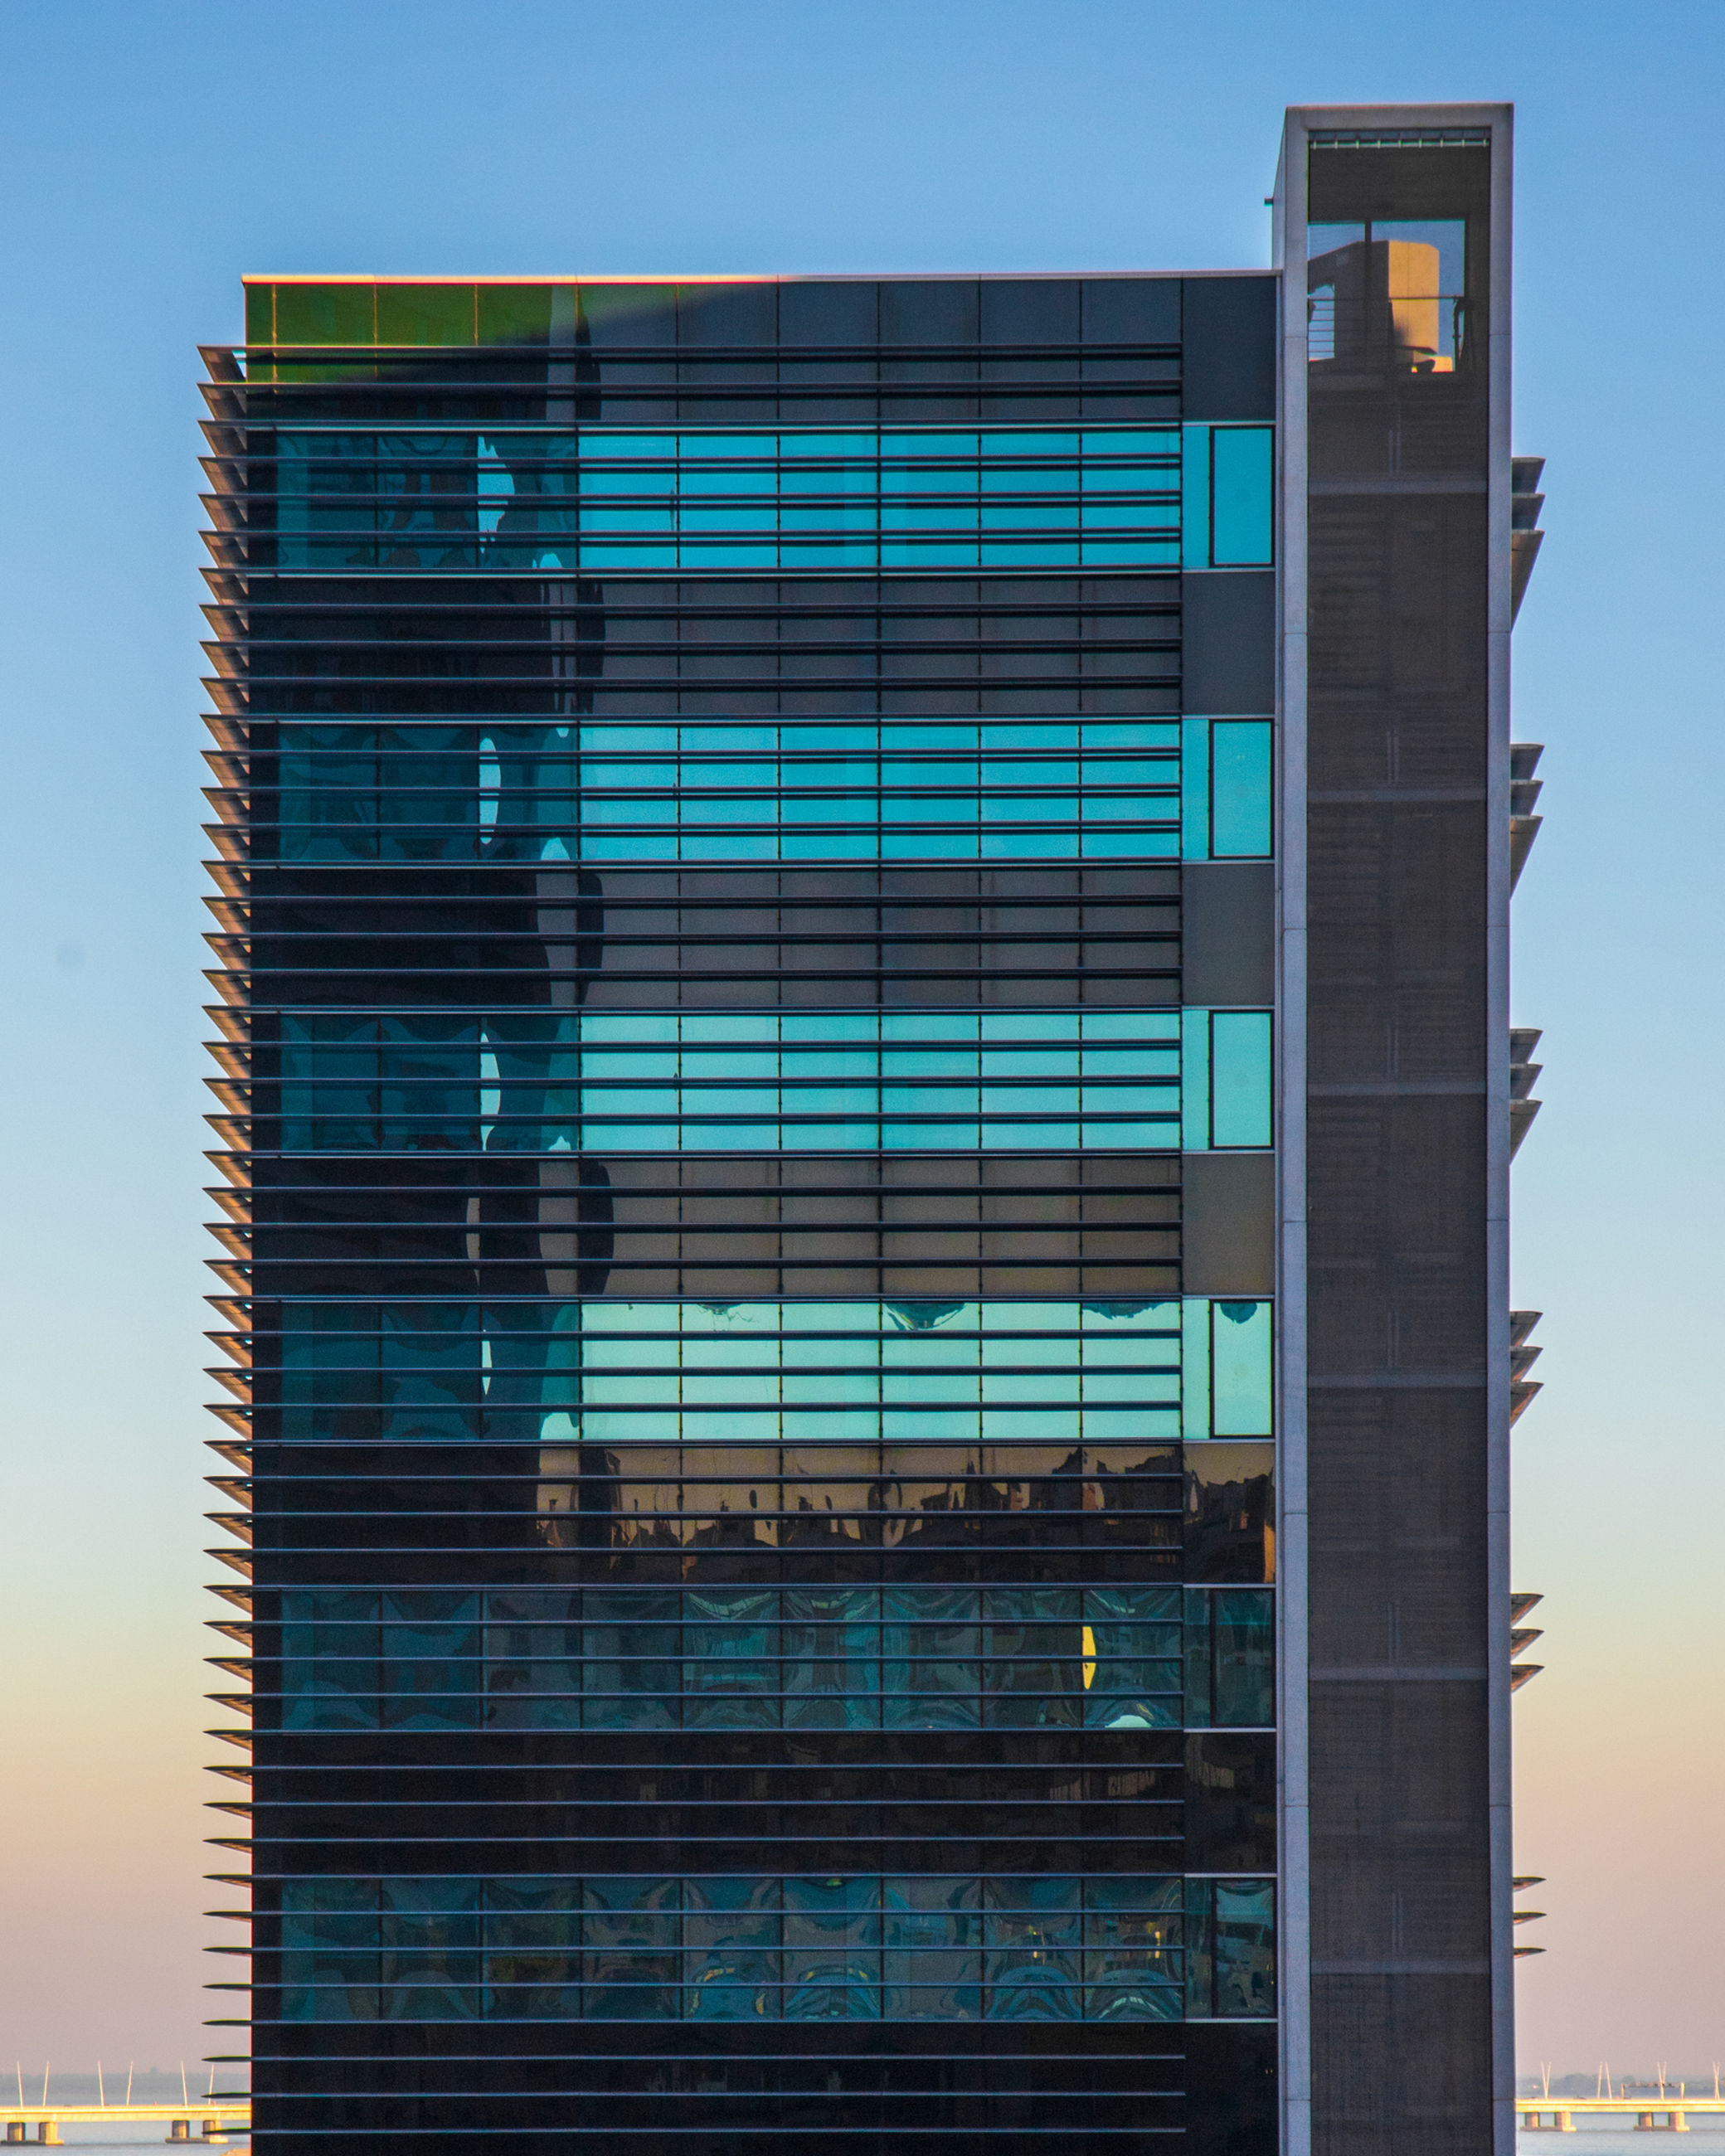 built structure, building exterior, architecture, modern, city, glass - material, office building exterior, low angle view, sky, building, no people, office, clear sky, reflection, outdoors, day, blue, illuminated, dusk, nature, skyscraper, financial district